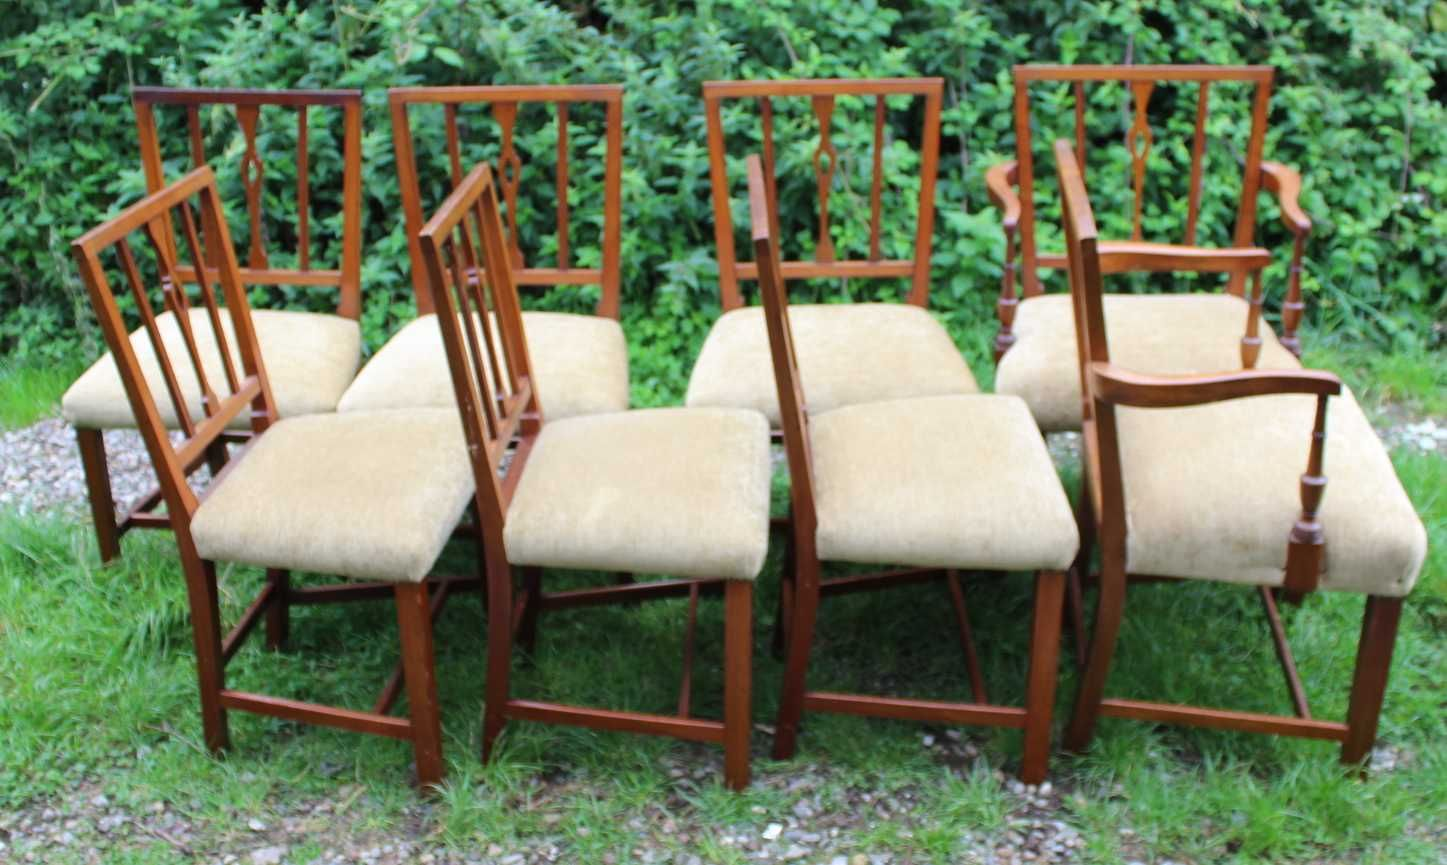 Antique Mahogany Dining Chairs, 1810s, Set Of 8